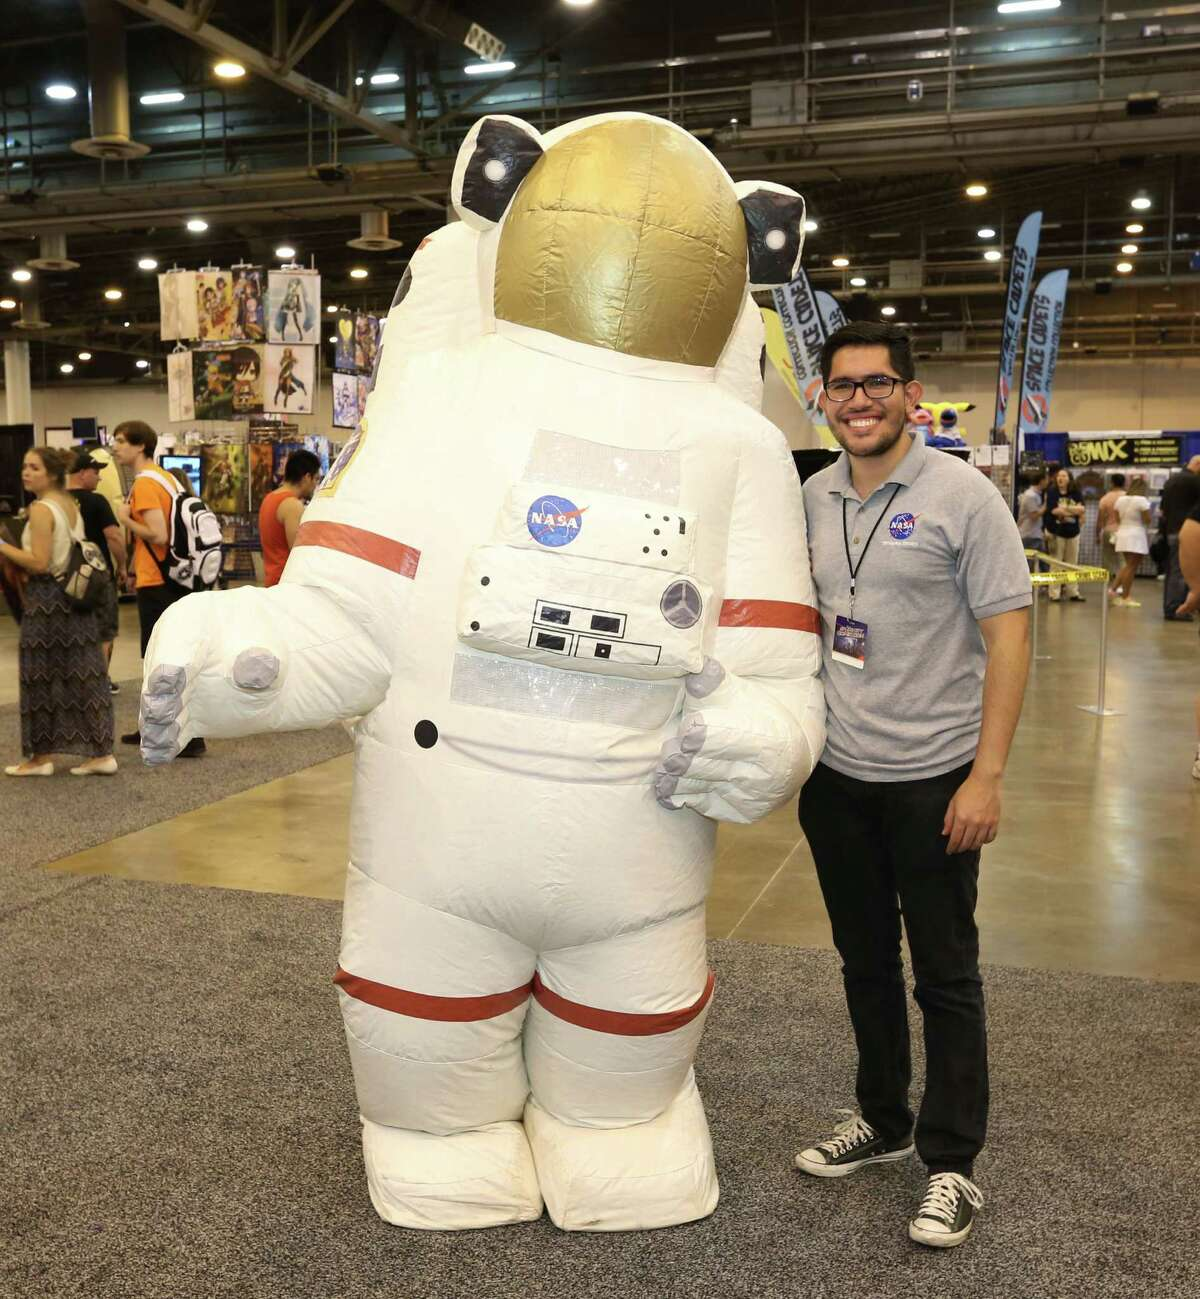 Fans pose for a photo at Space City Comic Con at NRG Center last year. The event takes place over the Memorial Day weekend.